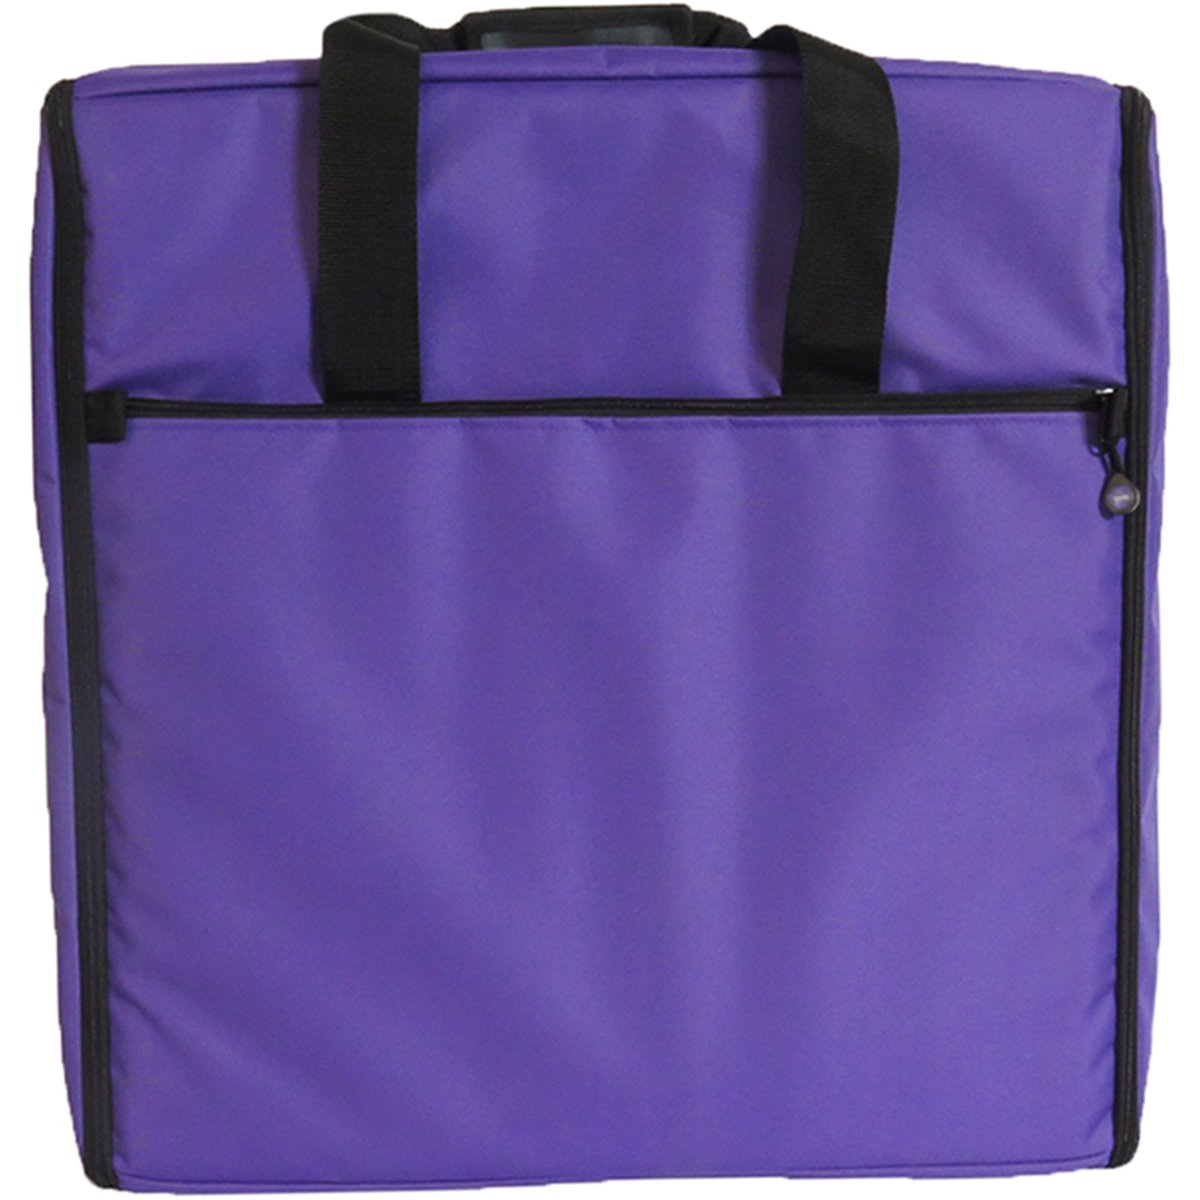 23 Embroidery Arm Bag 23x21x7-Purple